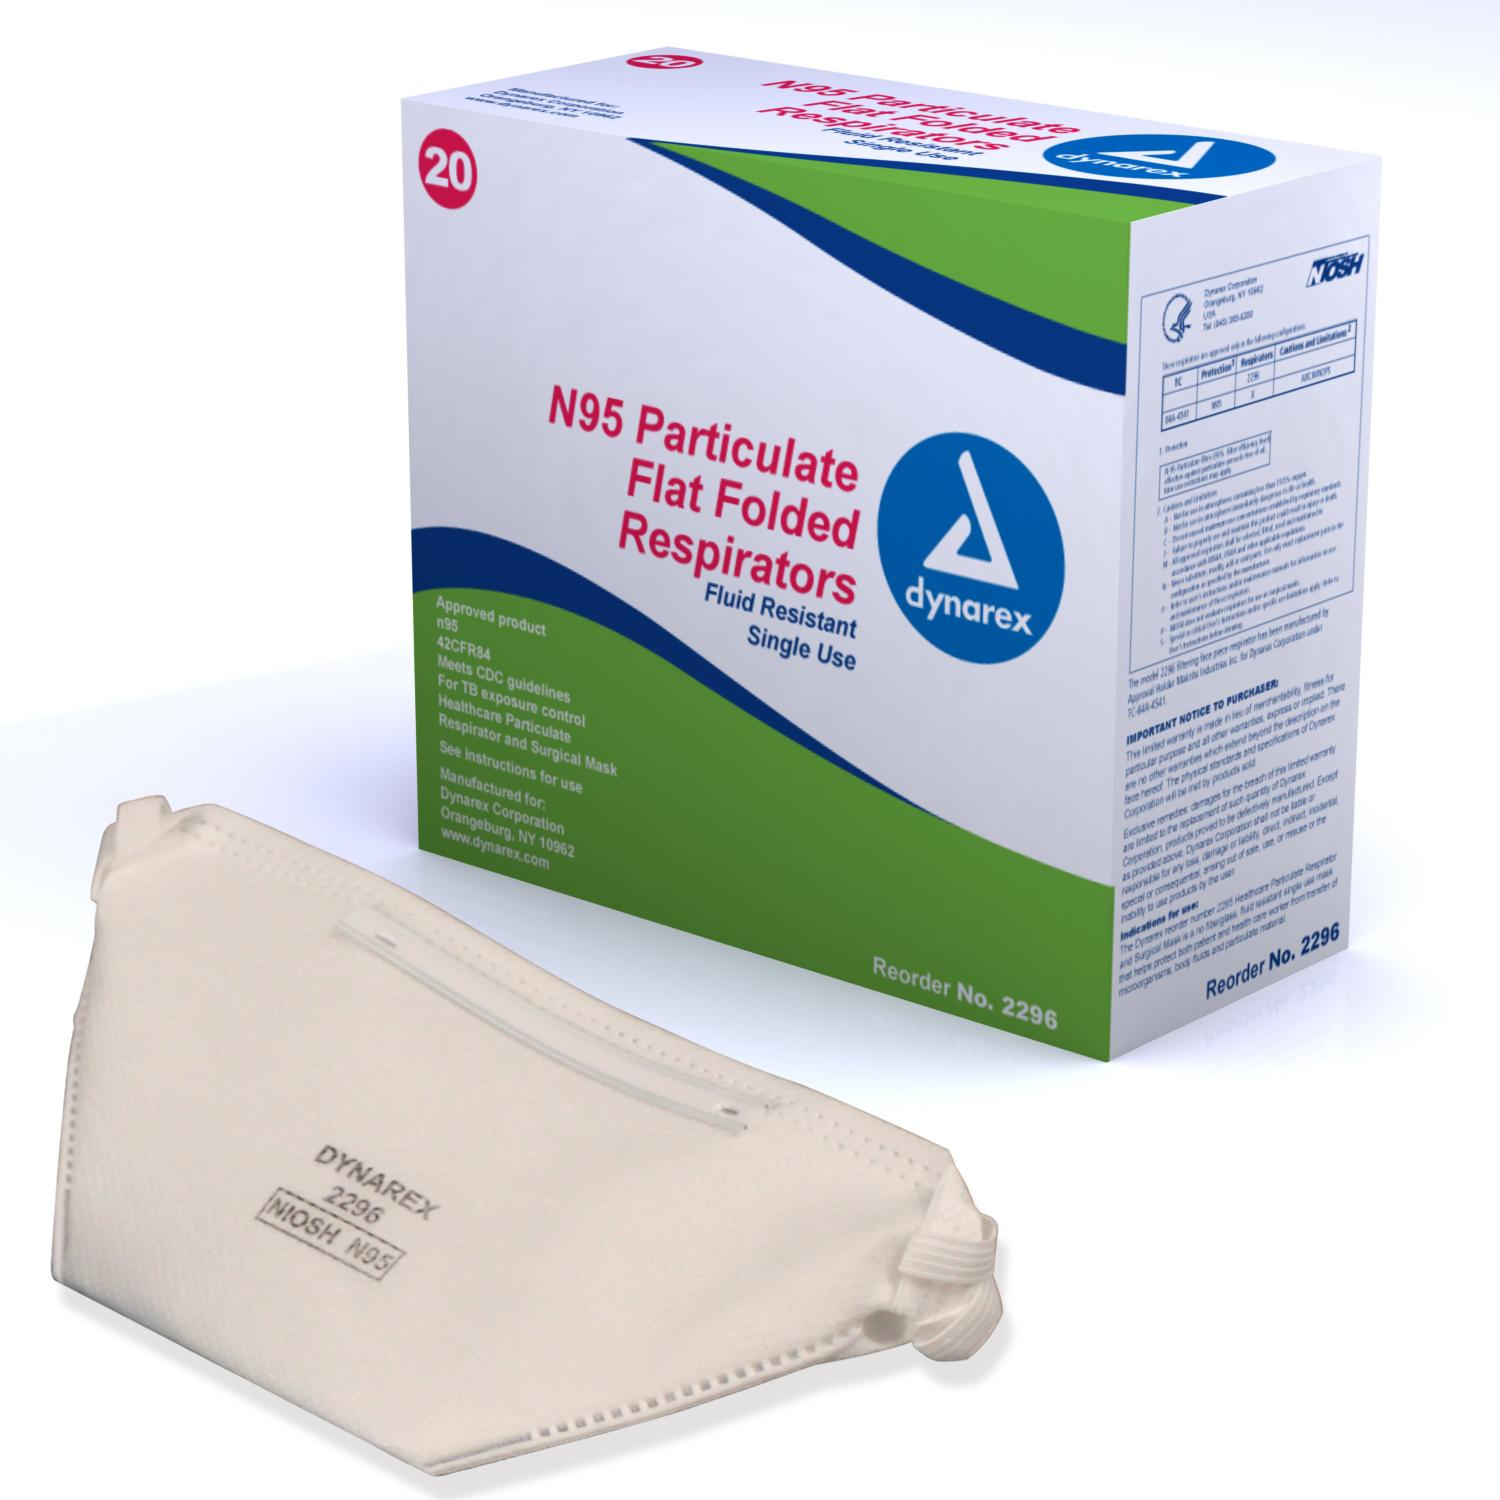 N95 Flat Folded Respirator: Box of 20 image